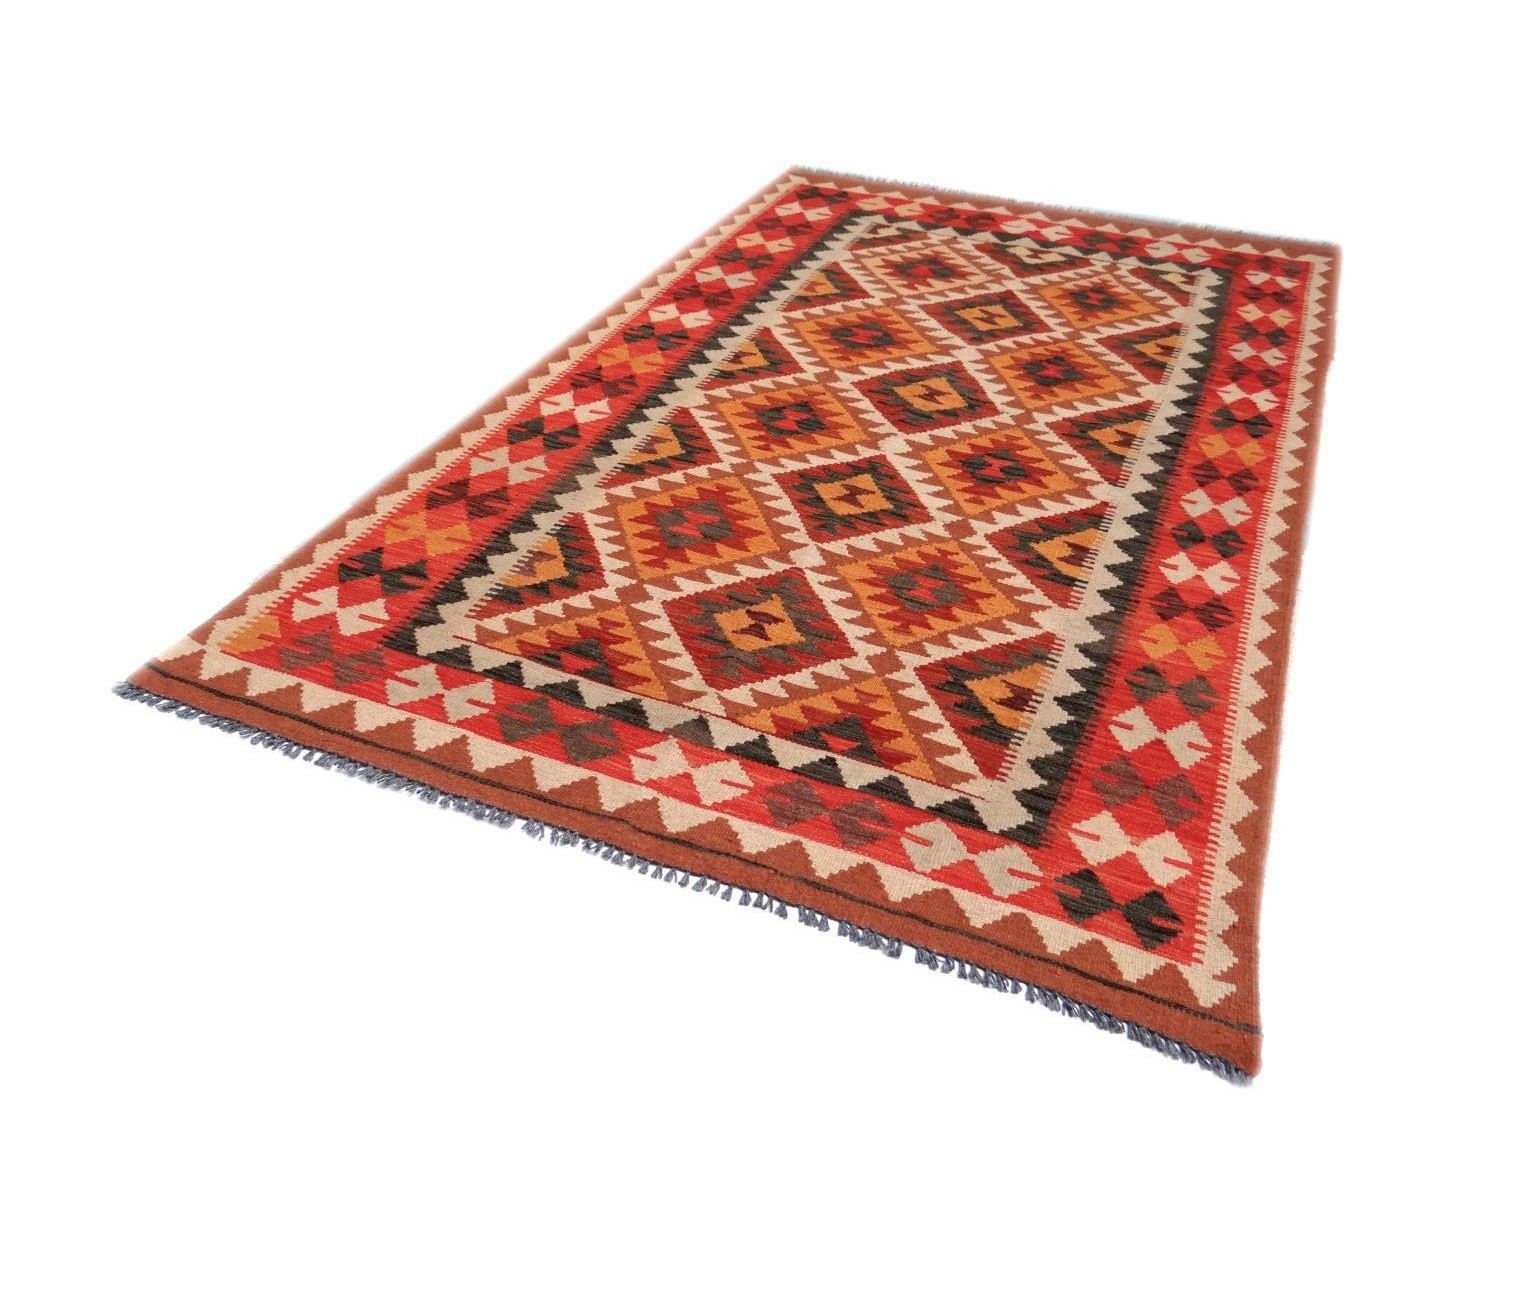 Kilim Afghan Traditionnel 209 x 126 cm